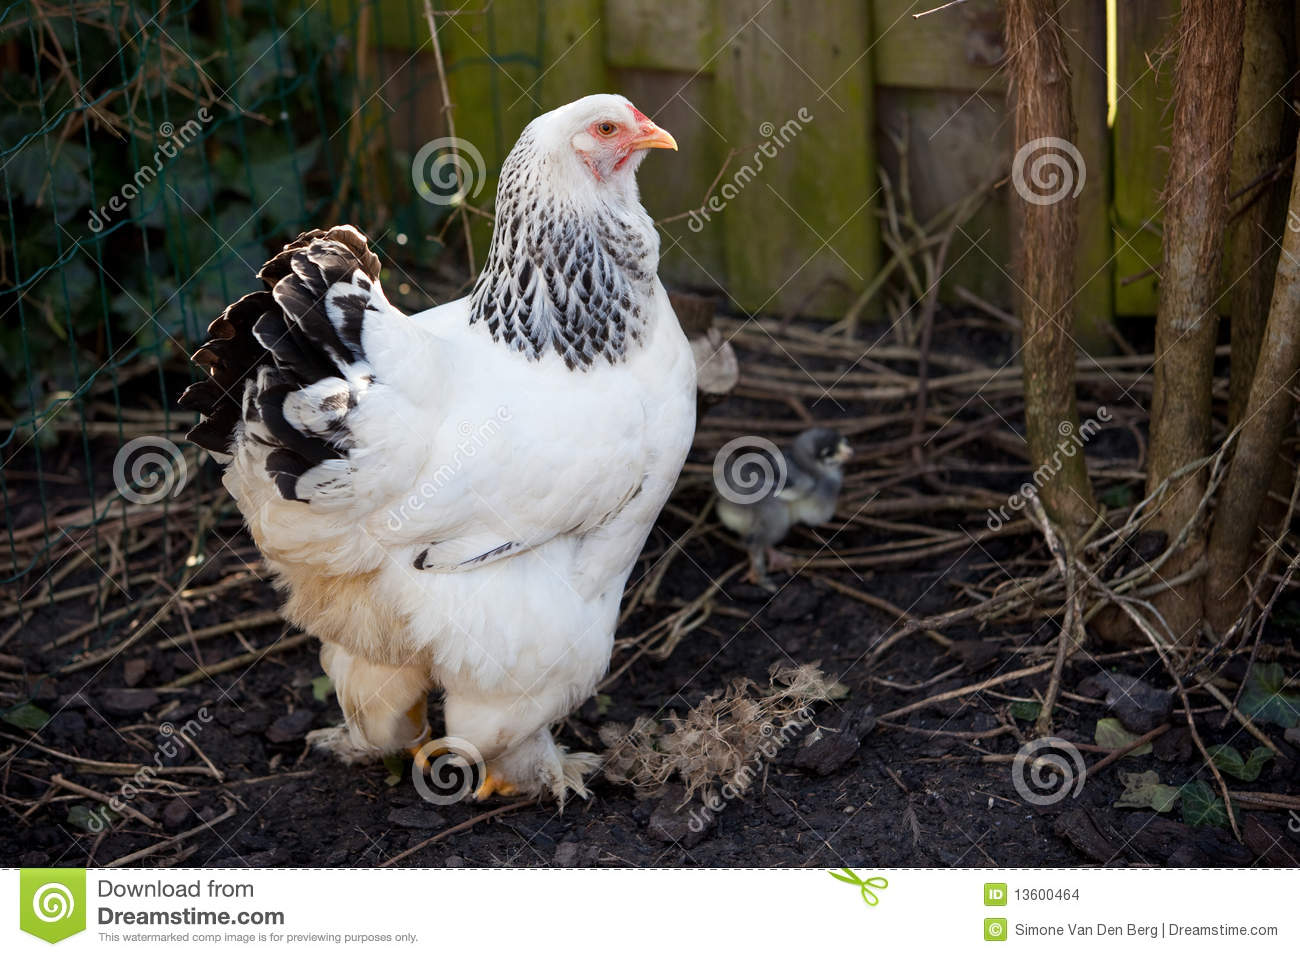 big brahma chicken with two baby chicks stock photo - image of chick